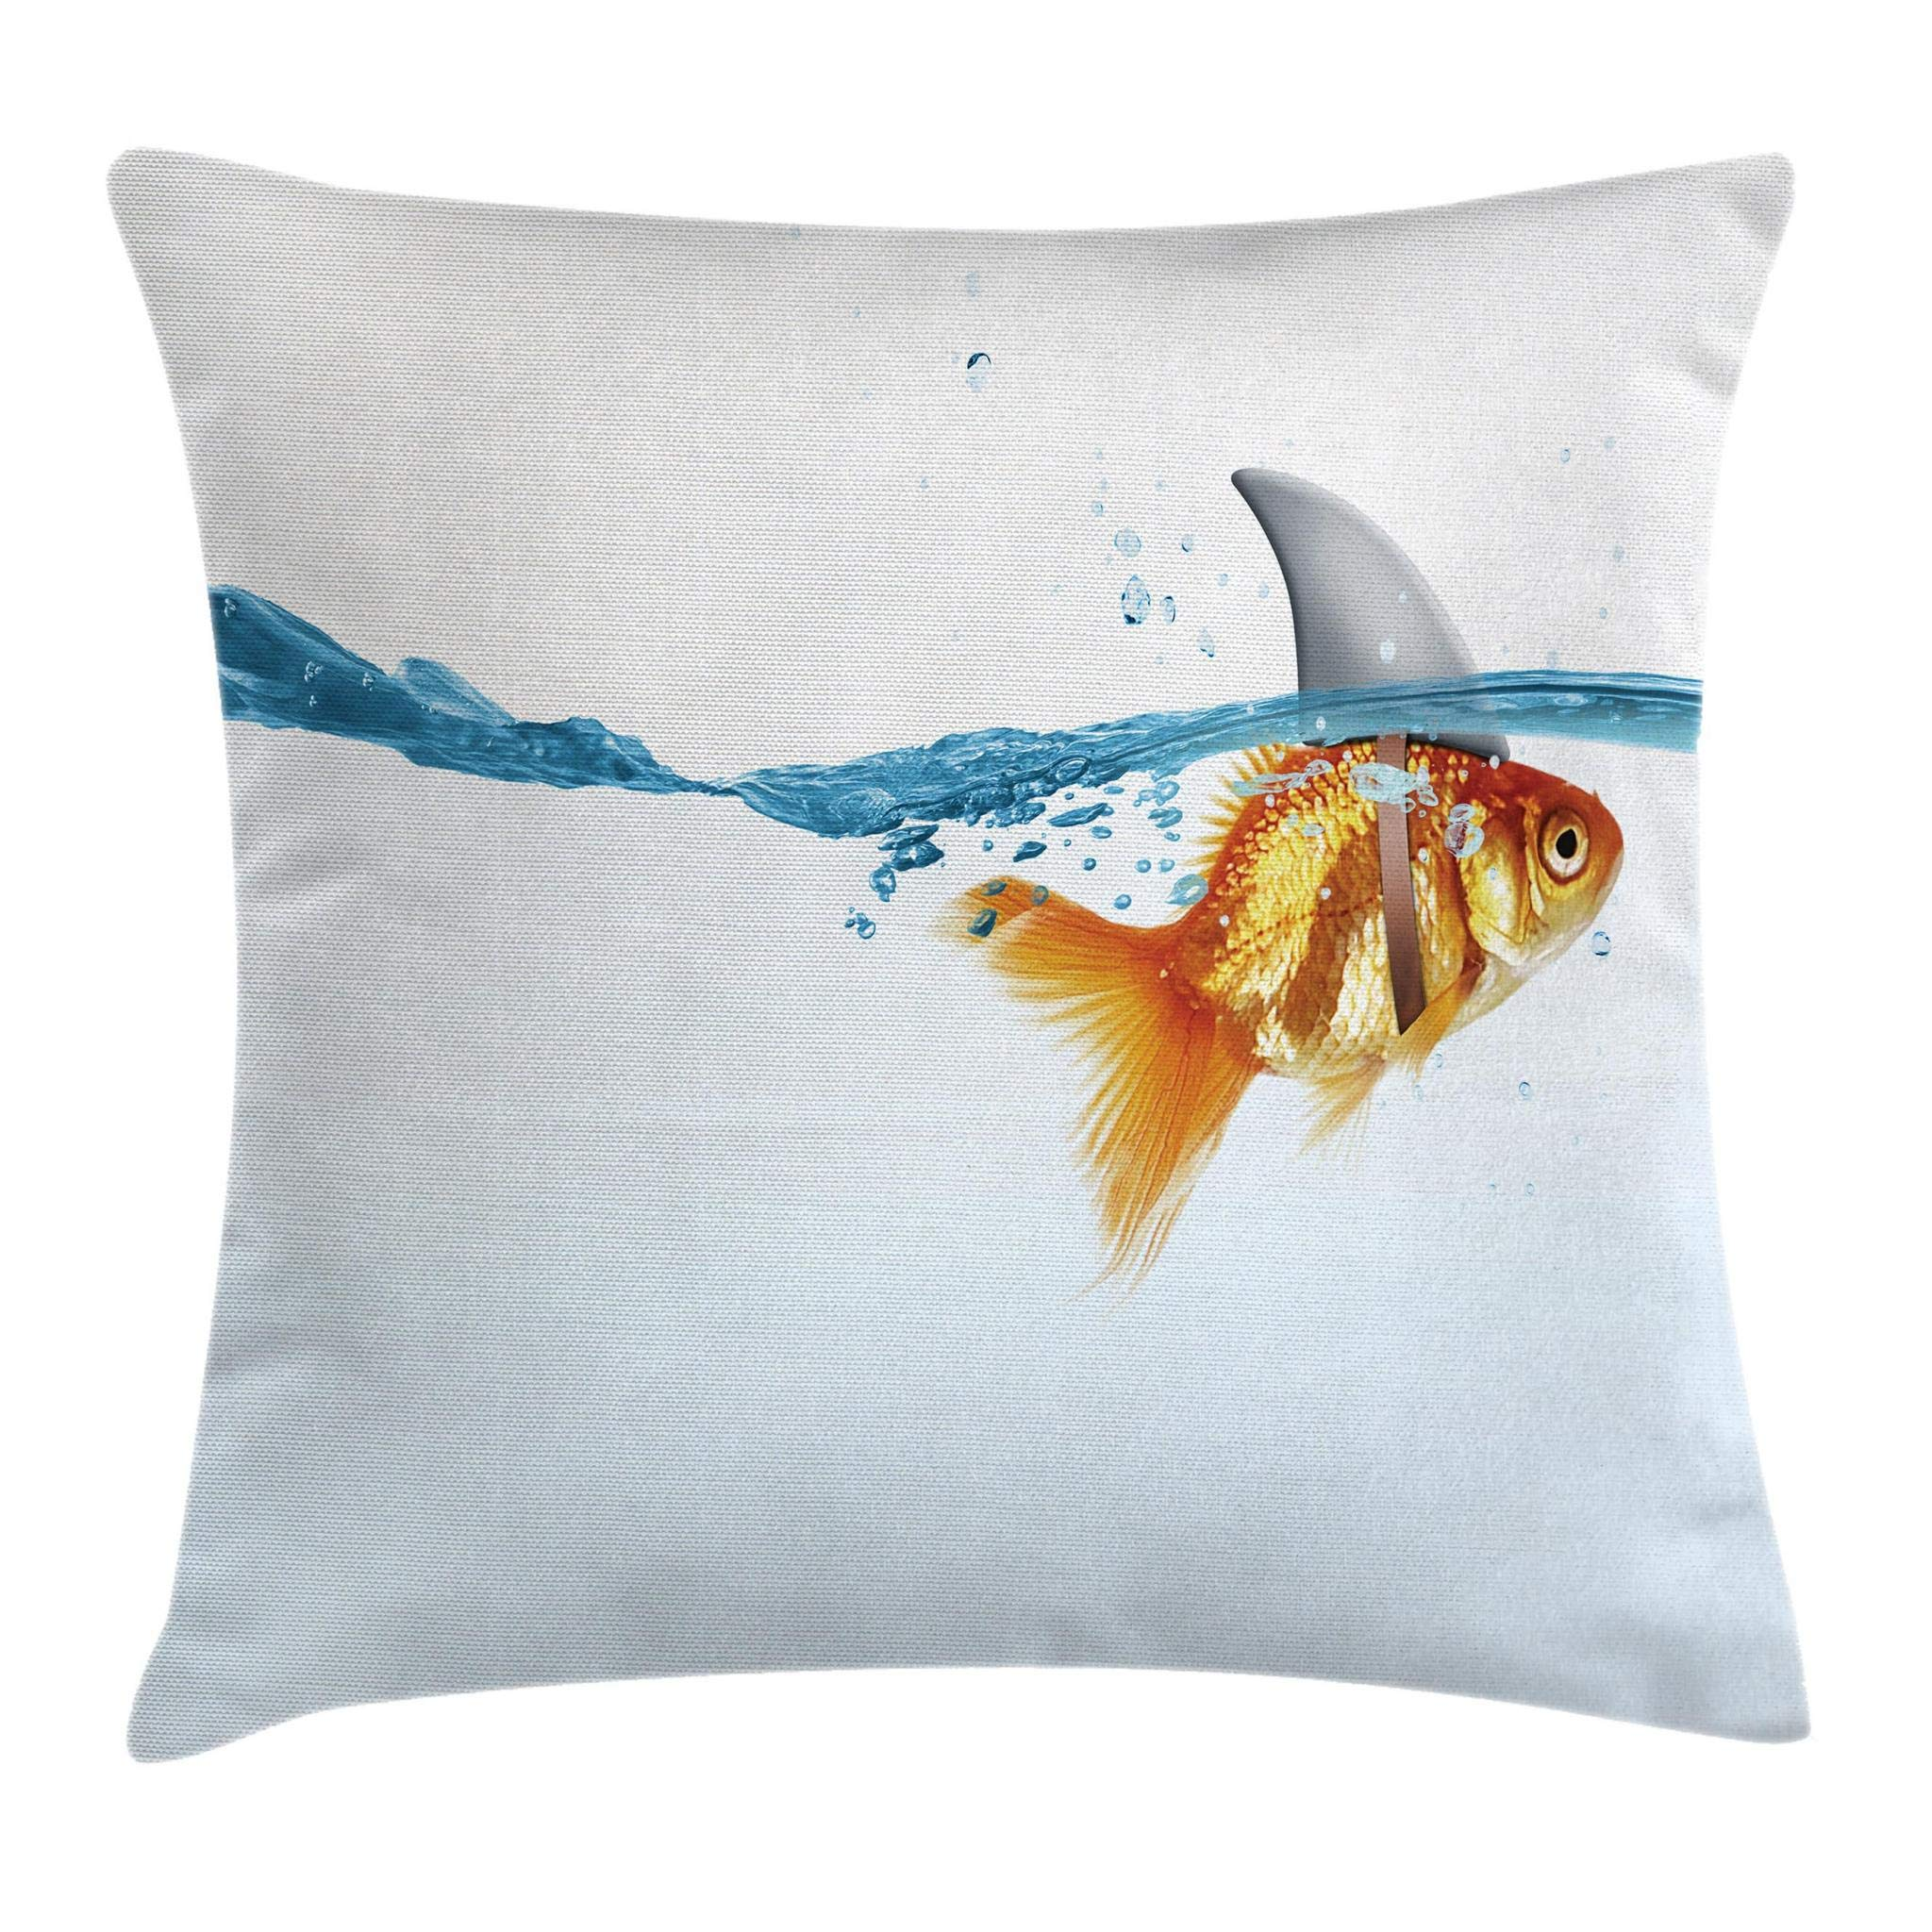 Ambesonne Sea Animal Decor Throw Pillow Cushion Cover by, Goldfish in Water with Shark Fin Scary Predators Tricky Humor Fun Image, Decorative Square Accent Pillow Case, 16 X 16 Inches, Orange Blue